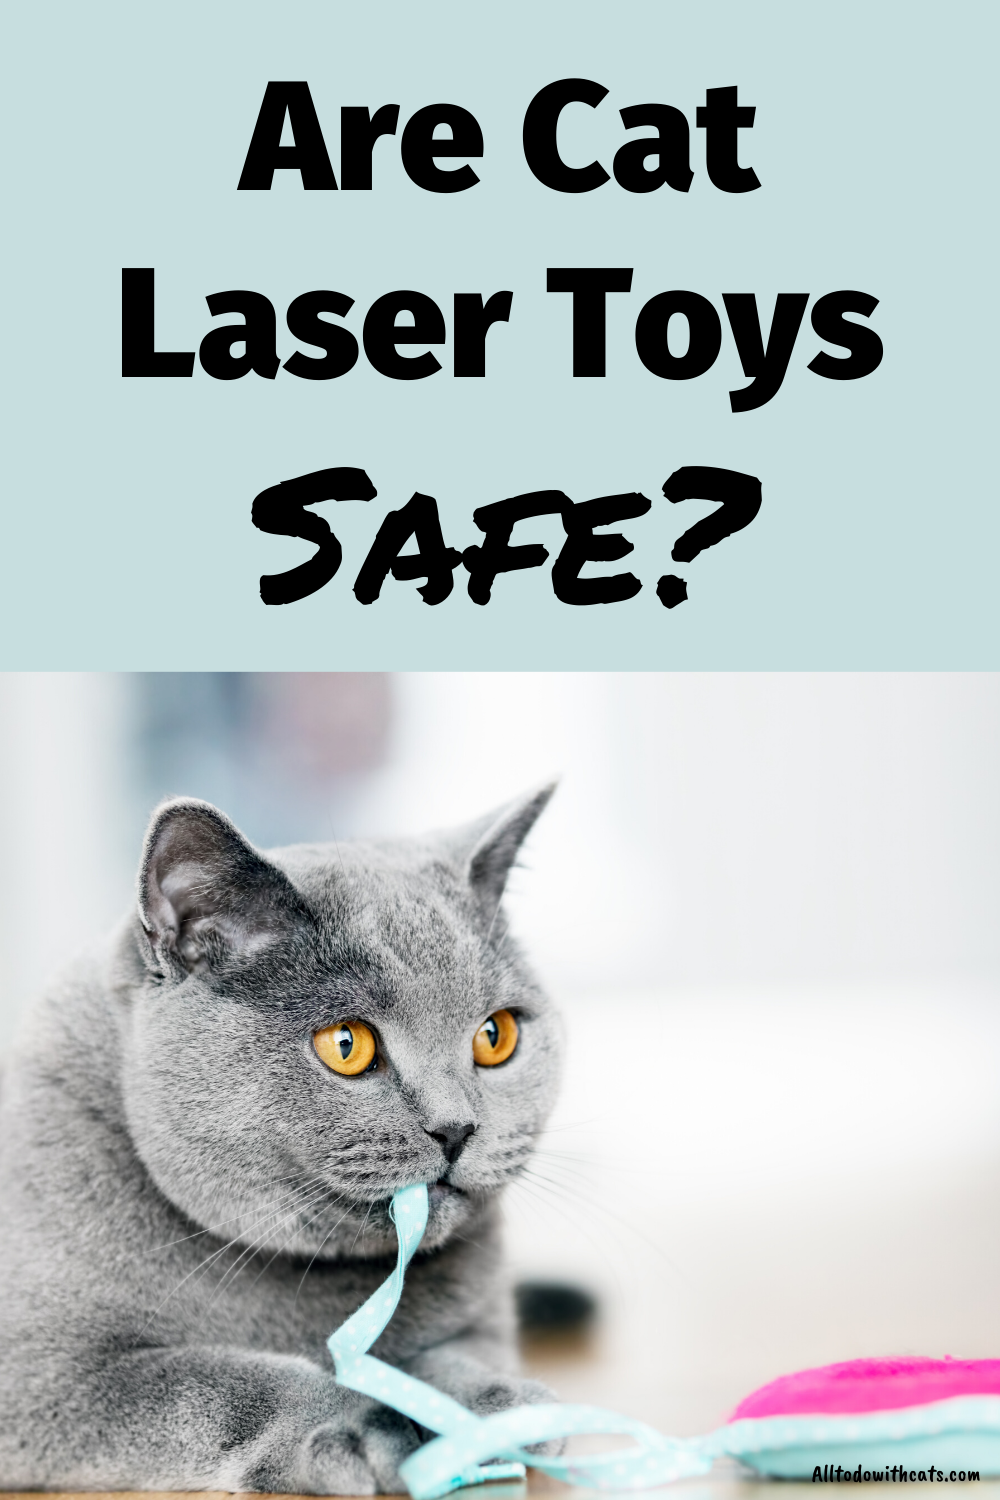 Why Do Cats Love Laser Pointers And Chasing The Red Dot In 2020 Cat Laser Toy Cat Laser Cat Love